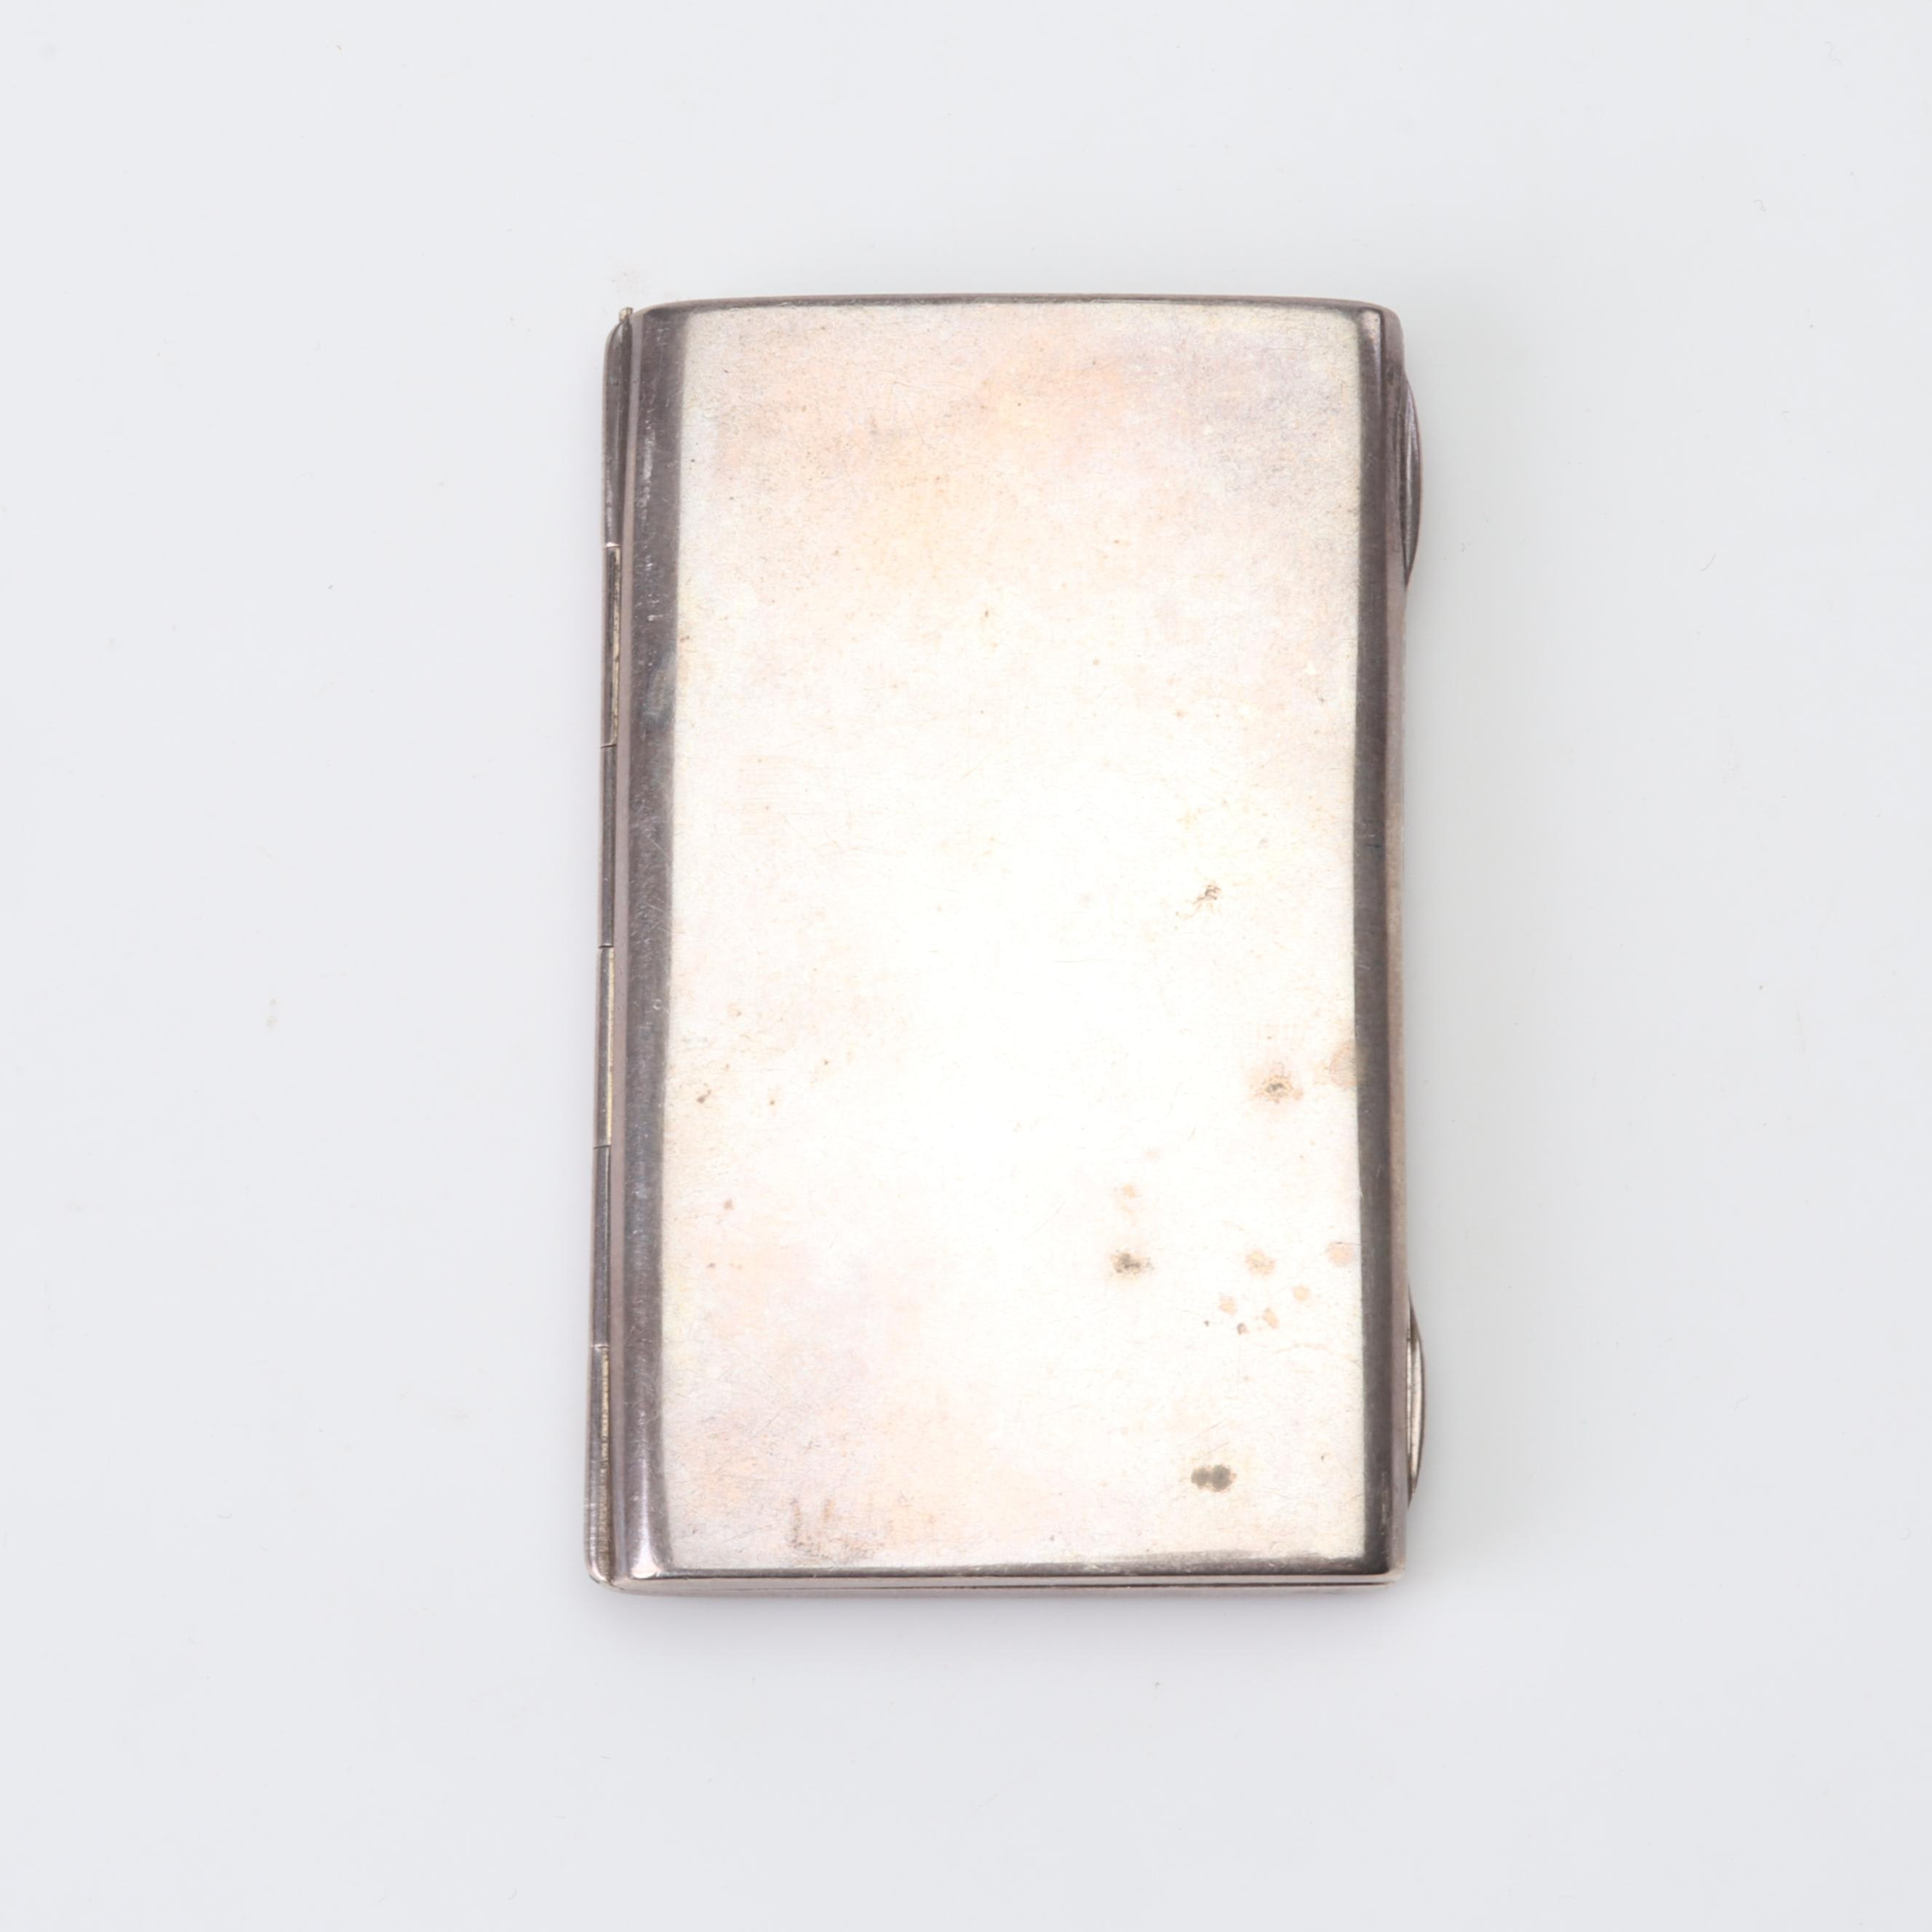 900 Silver Calling Card Case, Early 20th Century